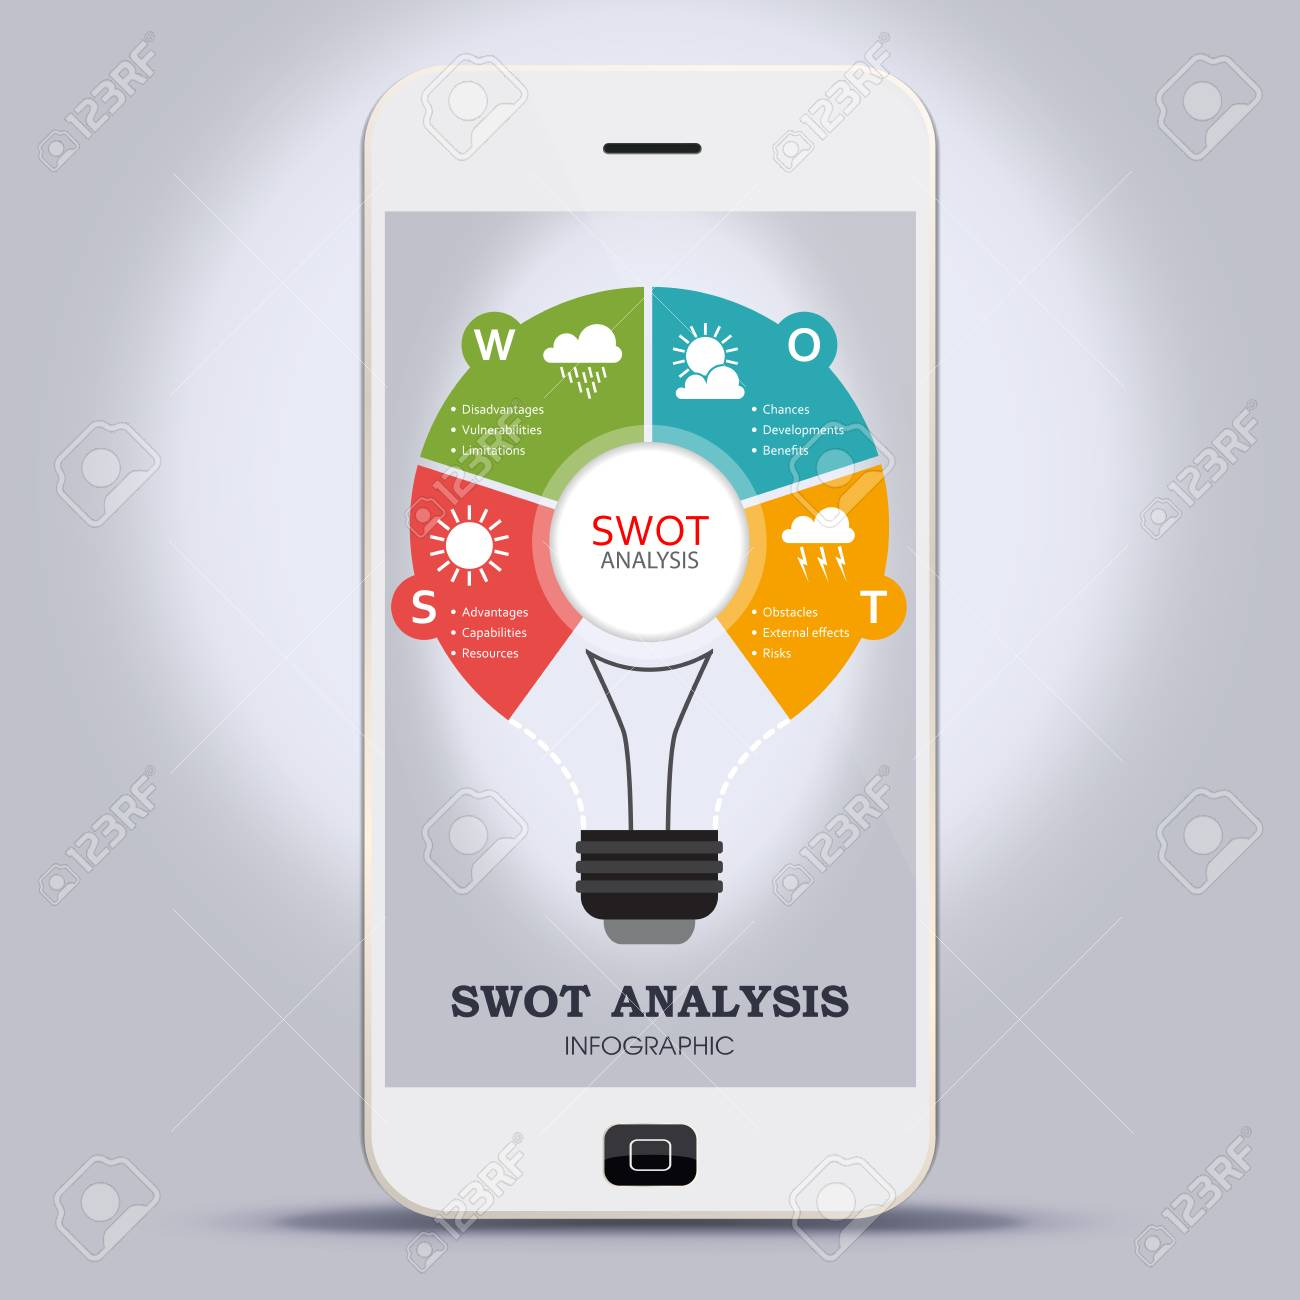 SWOT Analysis application bulb design template on mobile phone